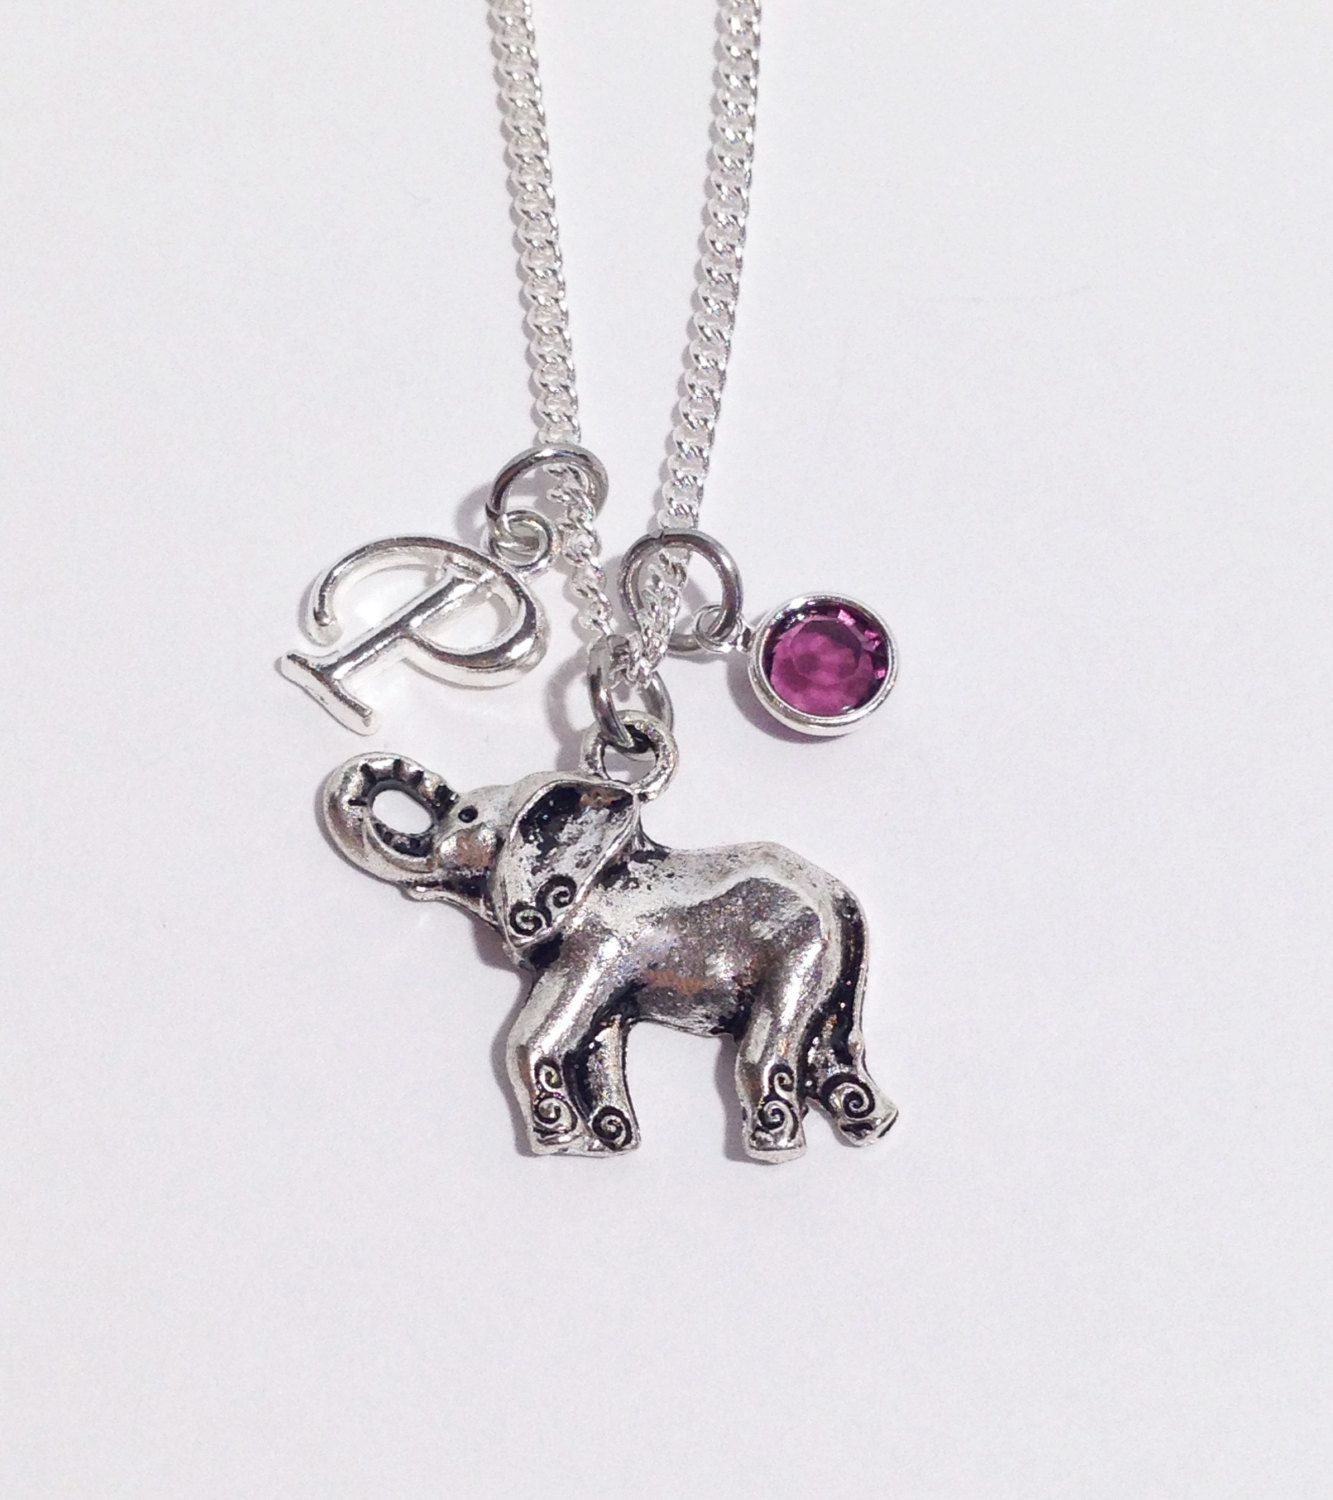 Christmas gifts for women Elephant Necklace Christmas gifts for her Elephant Gifts Personalized Necklace Christmas gifts for mom